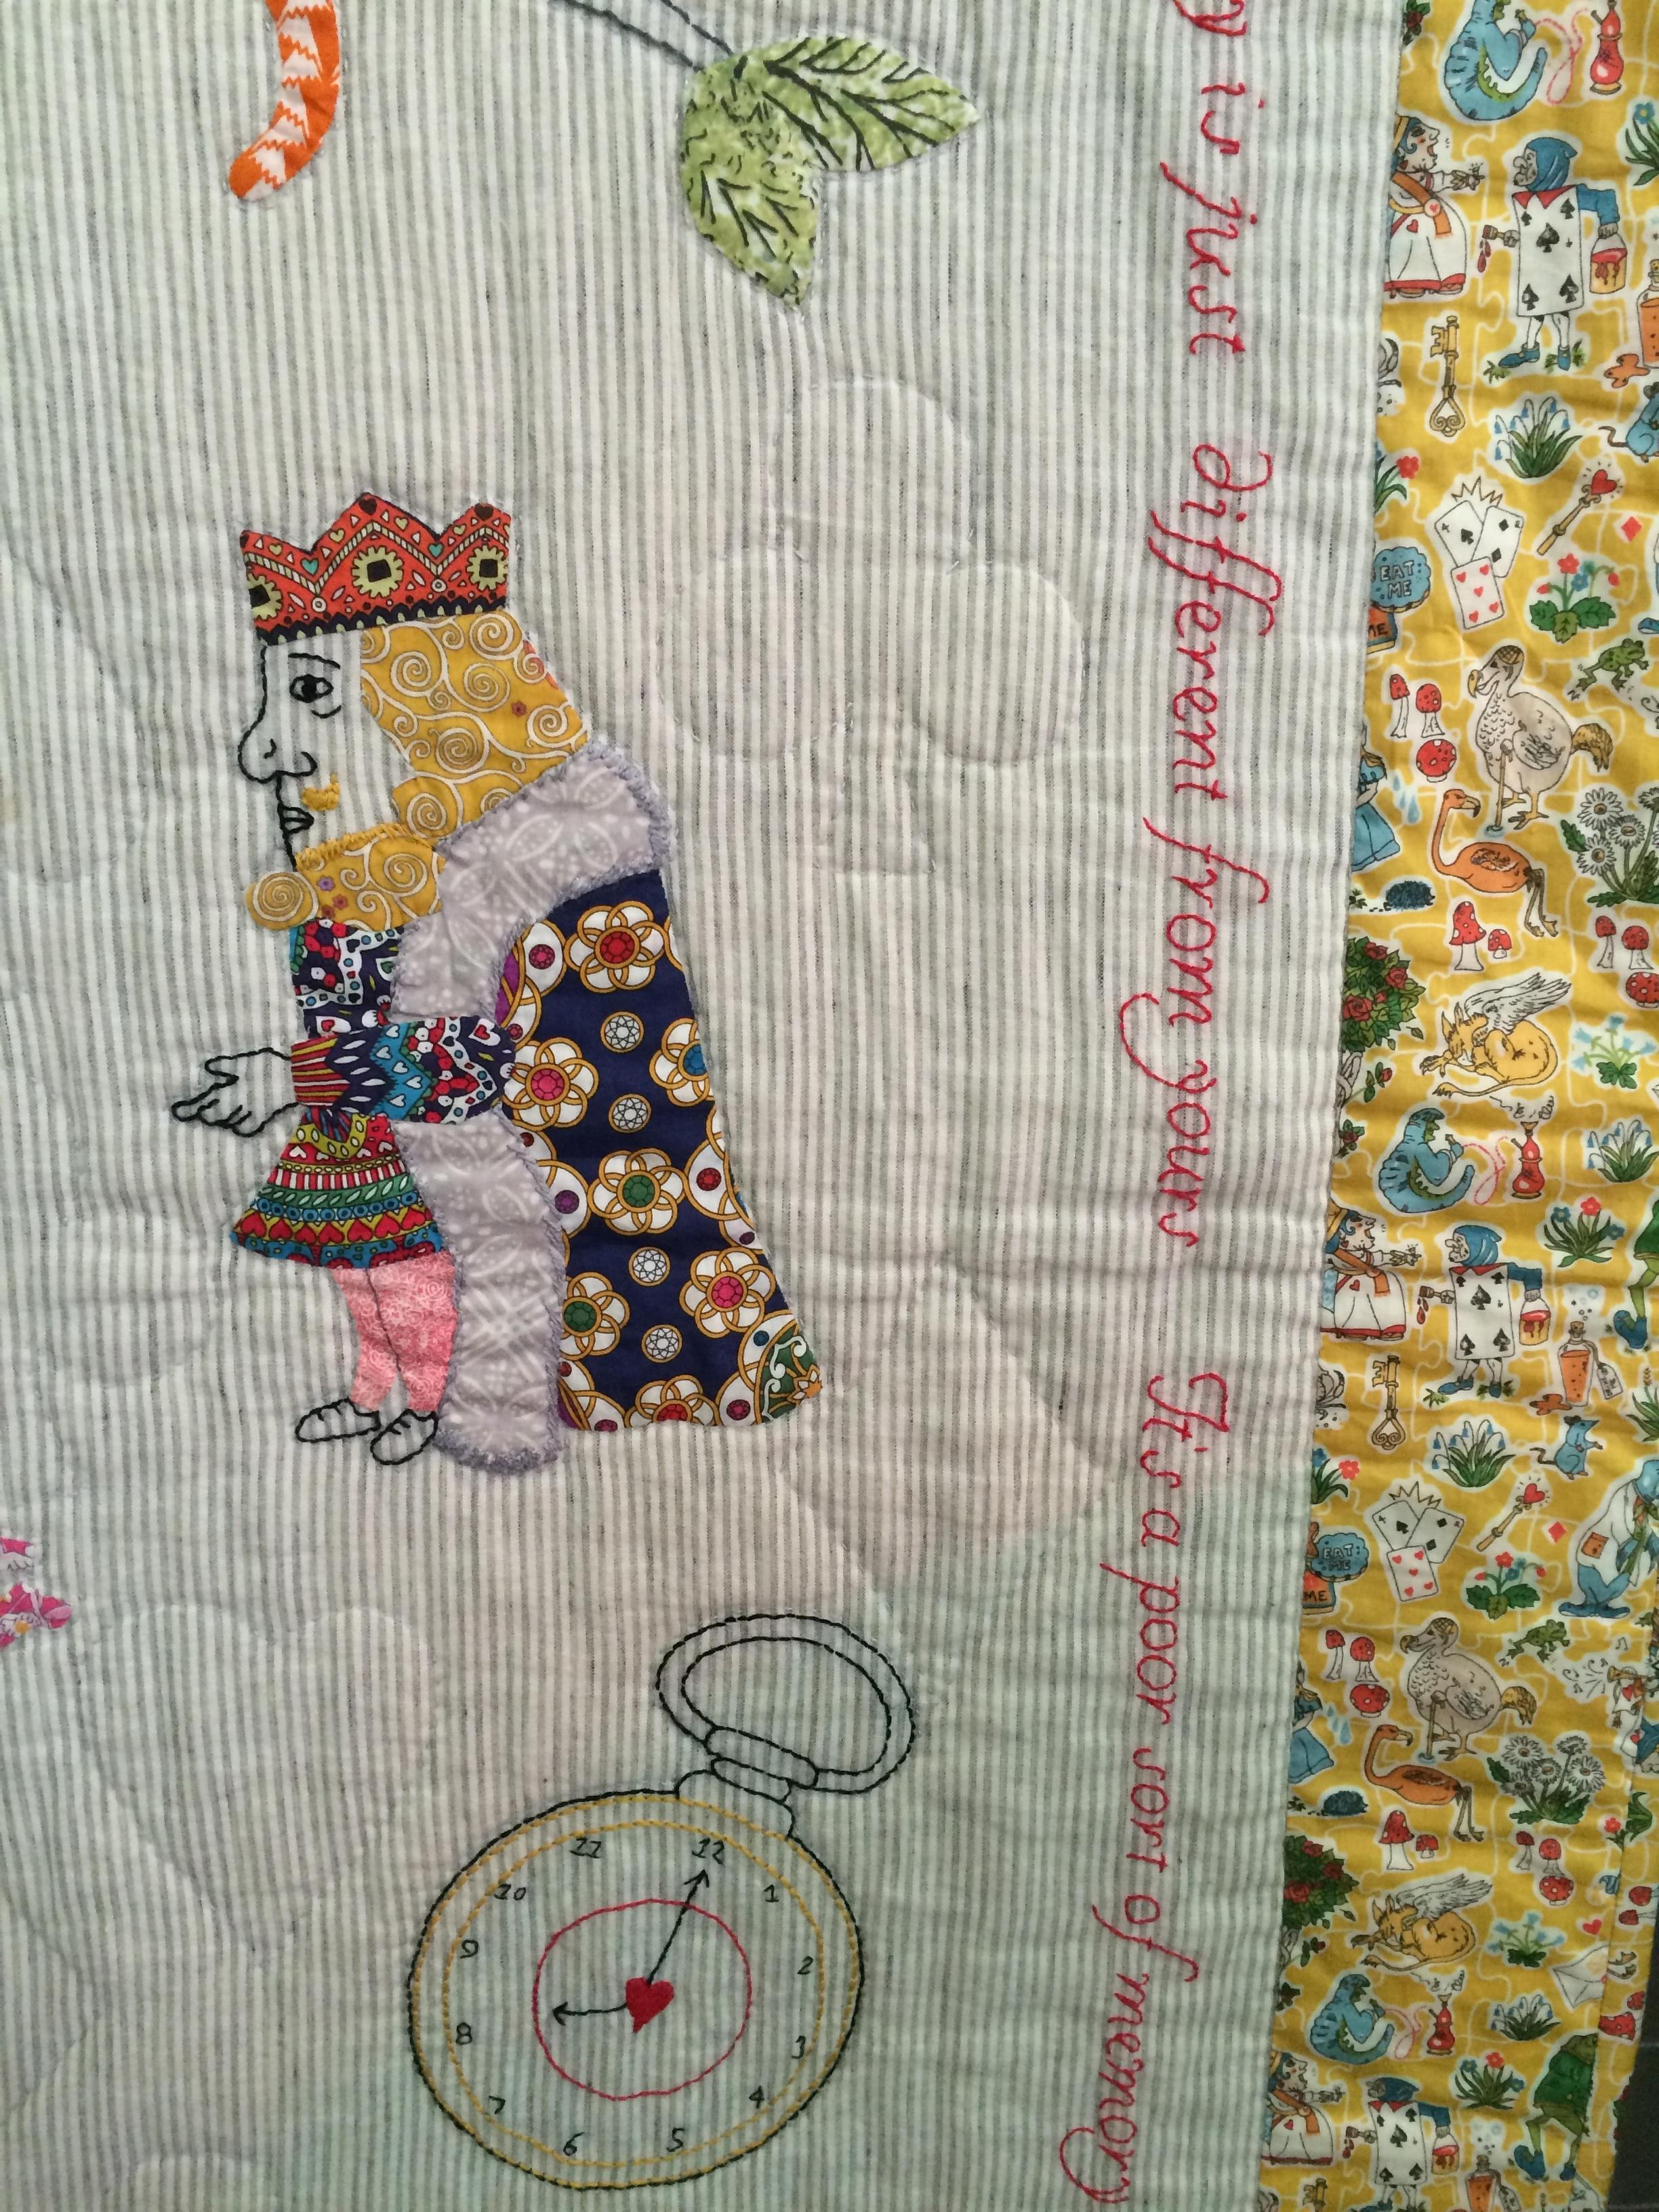 Another snapshot of one of Judy's quilts.